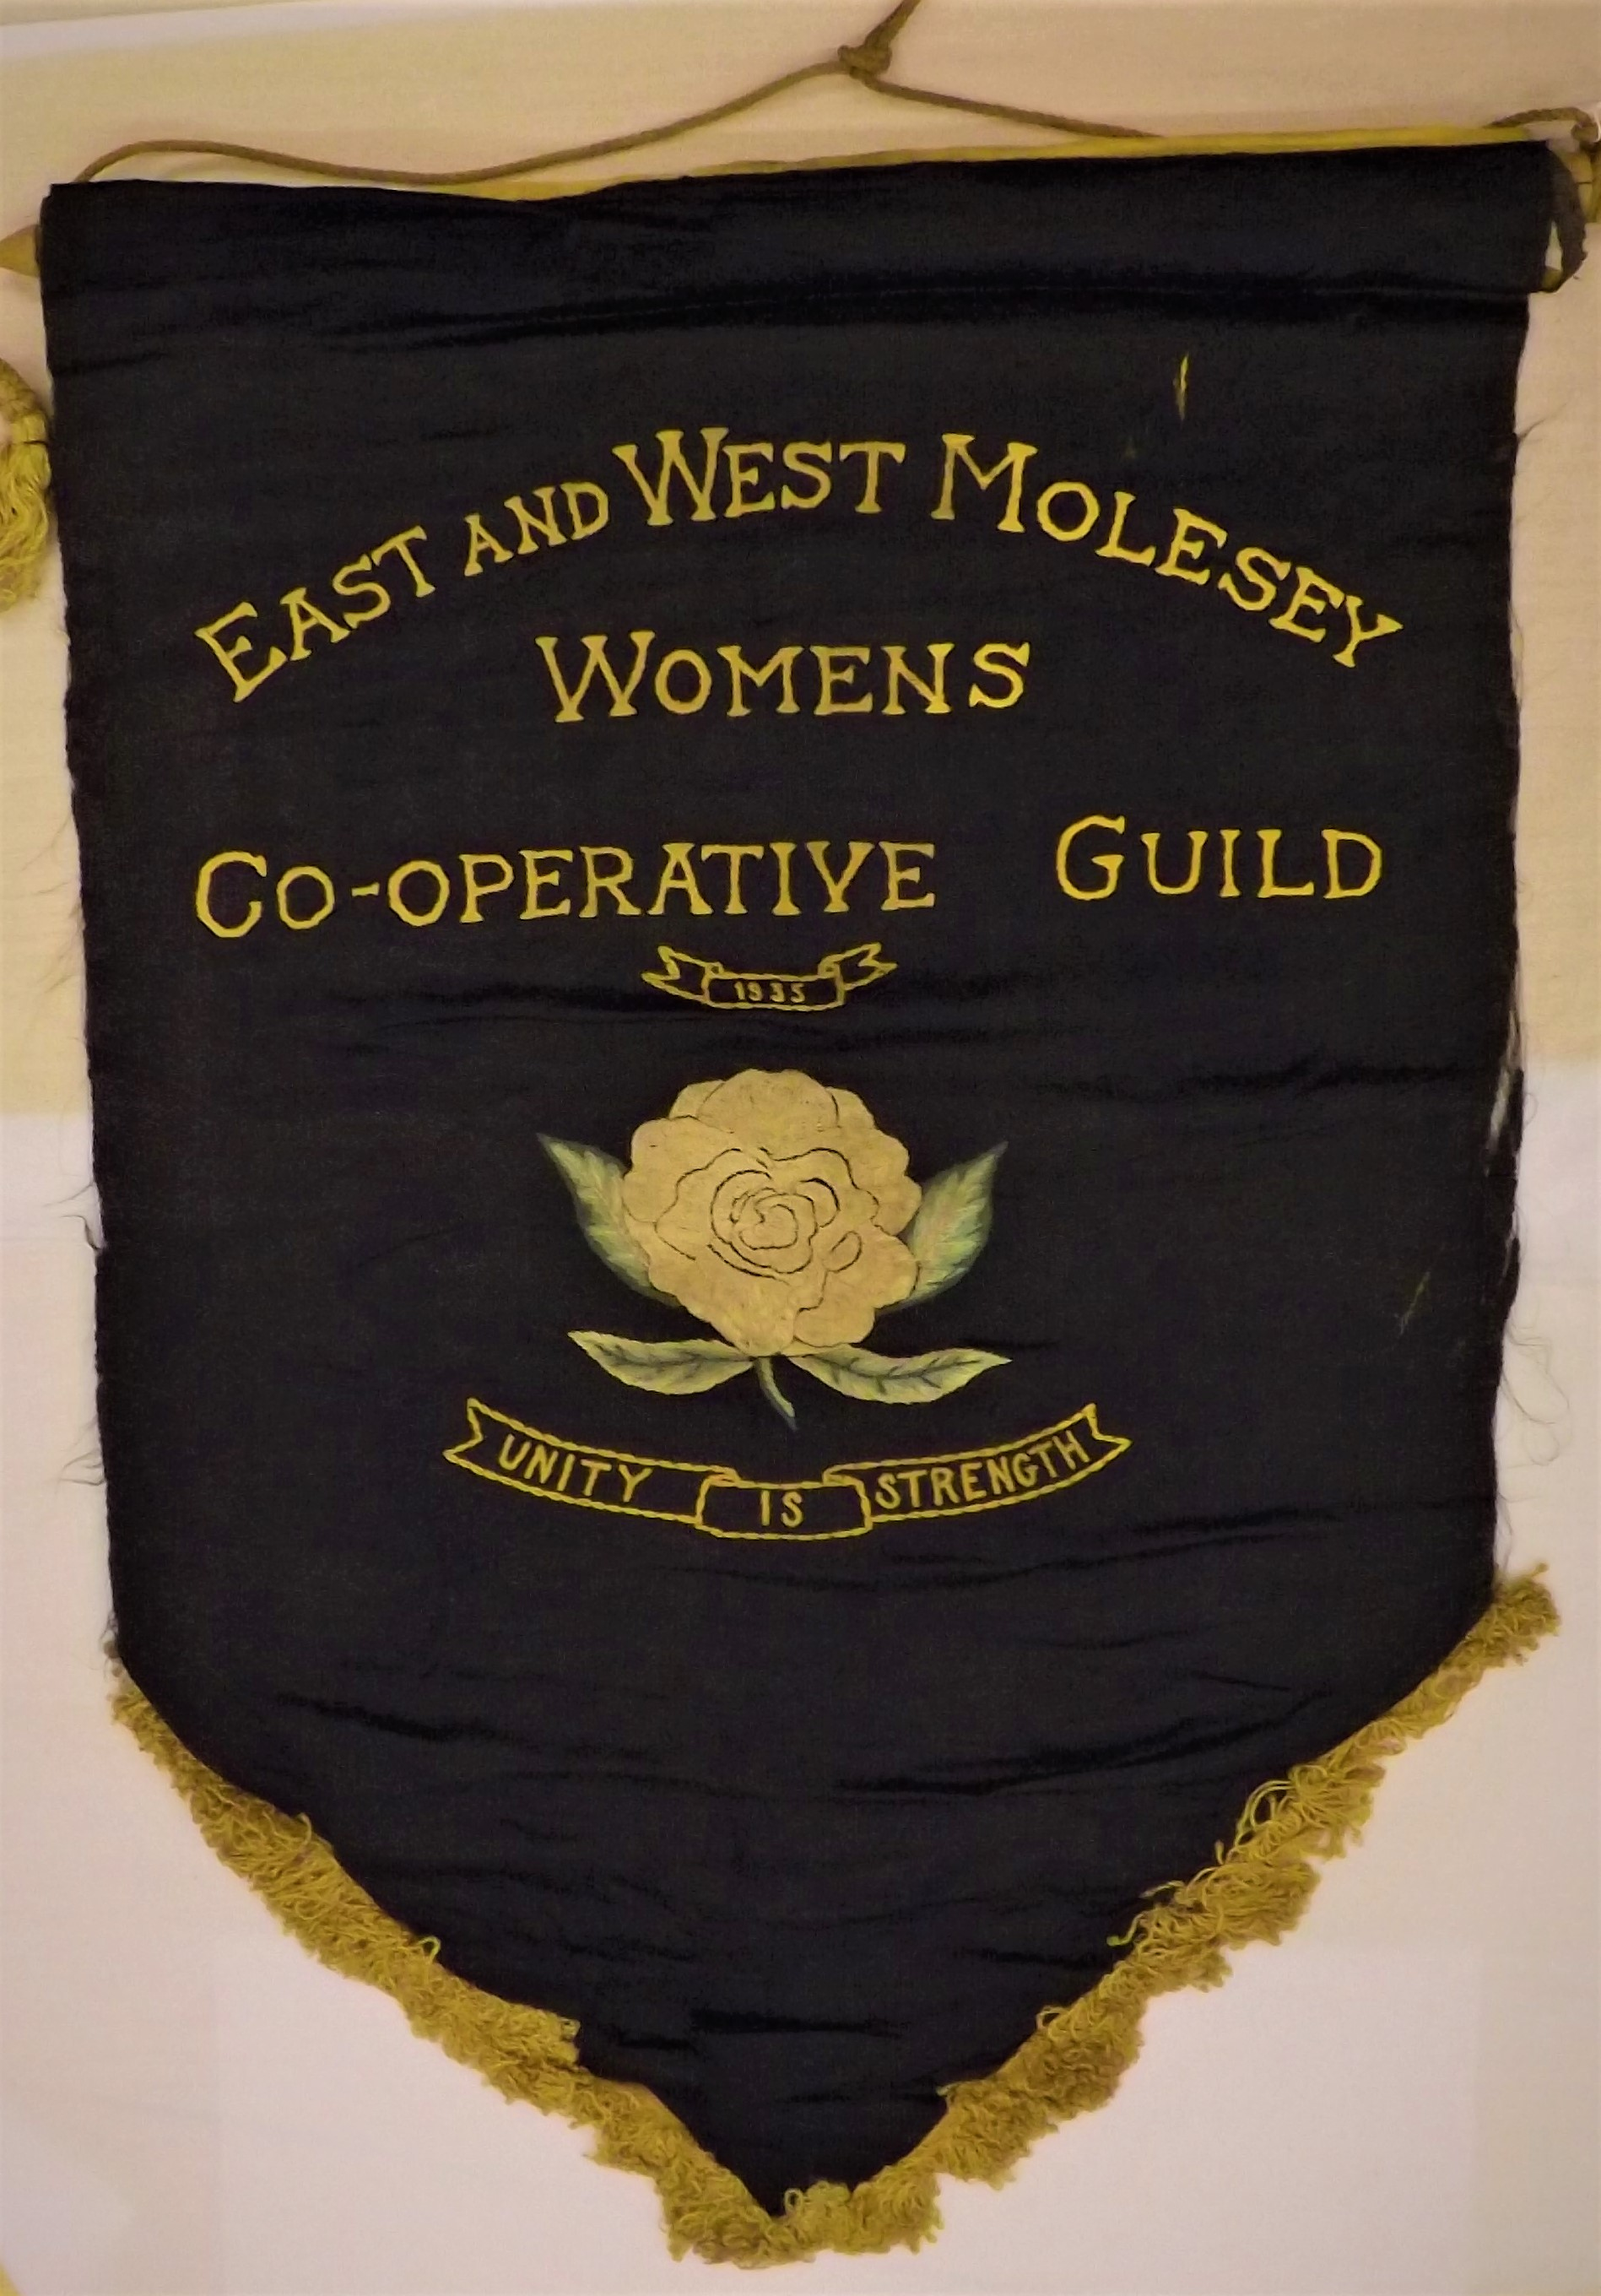 Banner from the East and West Molesey Women's Cooperative Guild, an organisation descended, in part, from the Women's Freedom League.